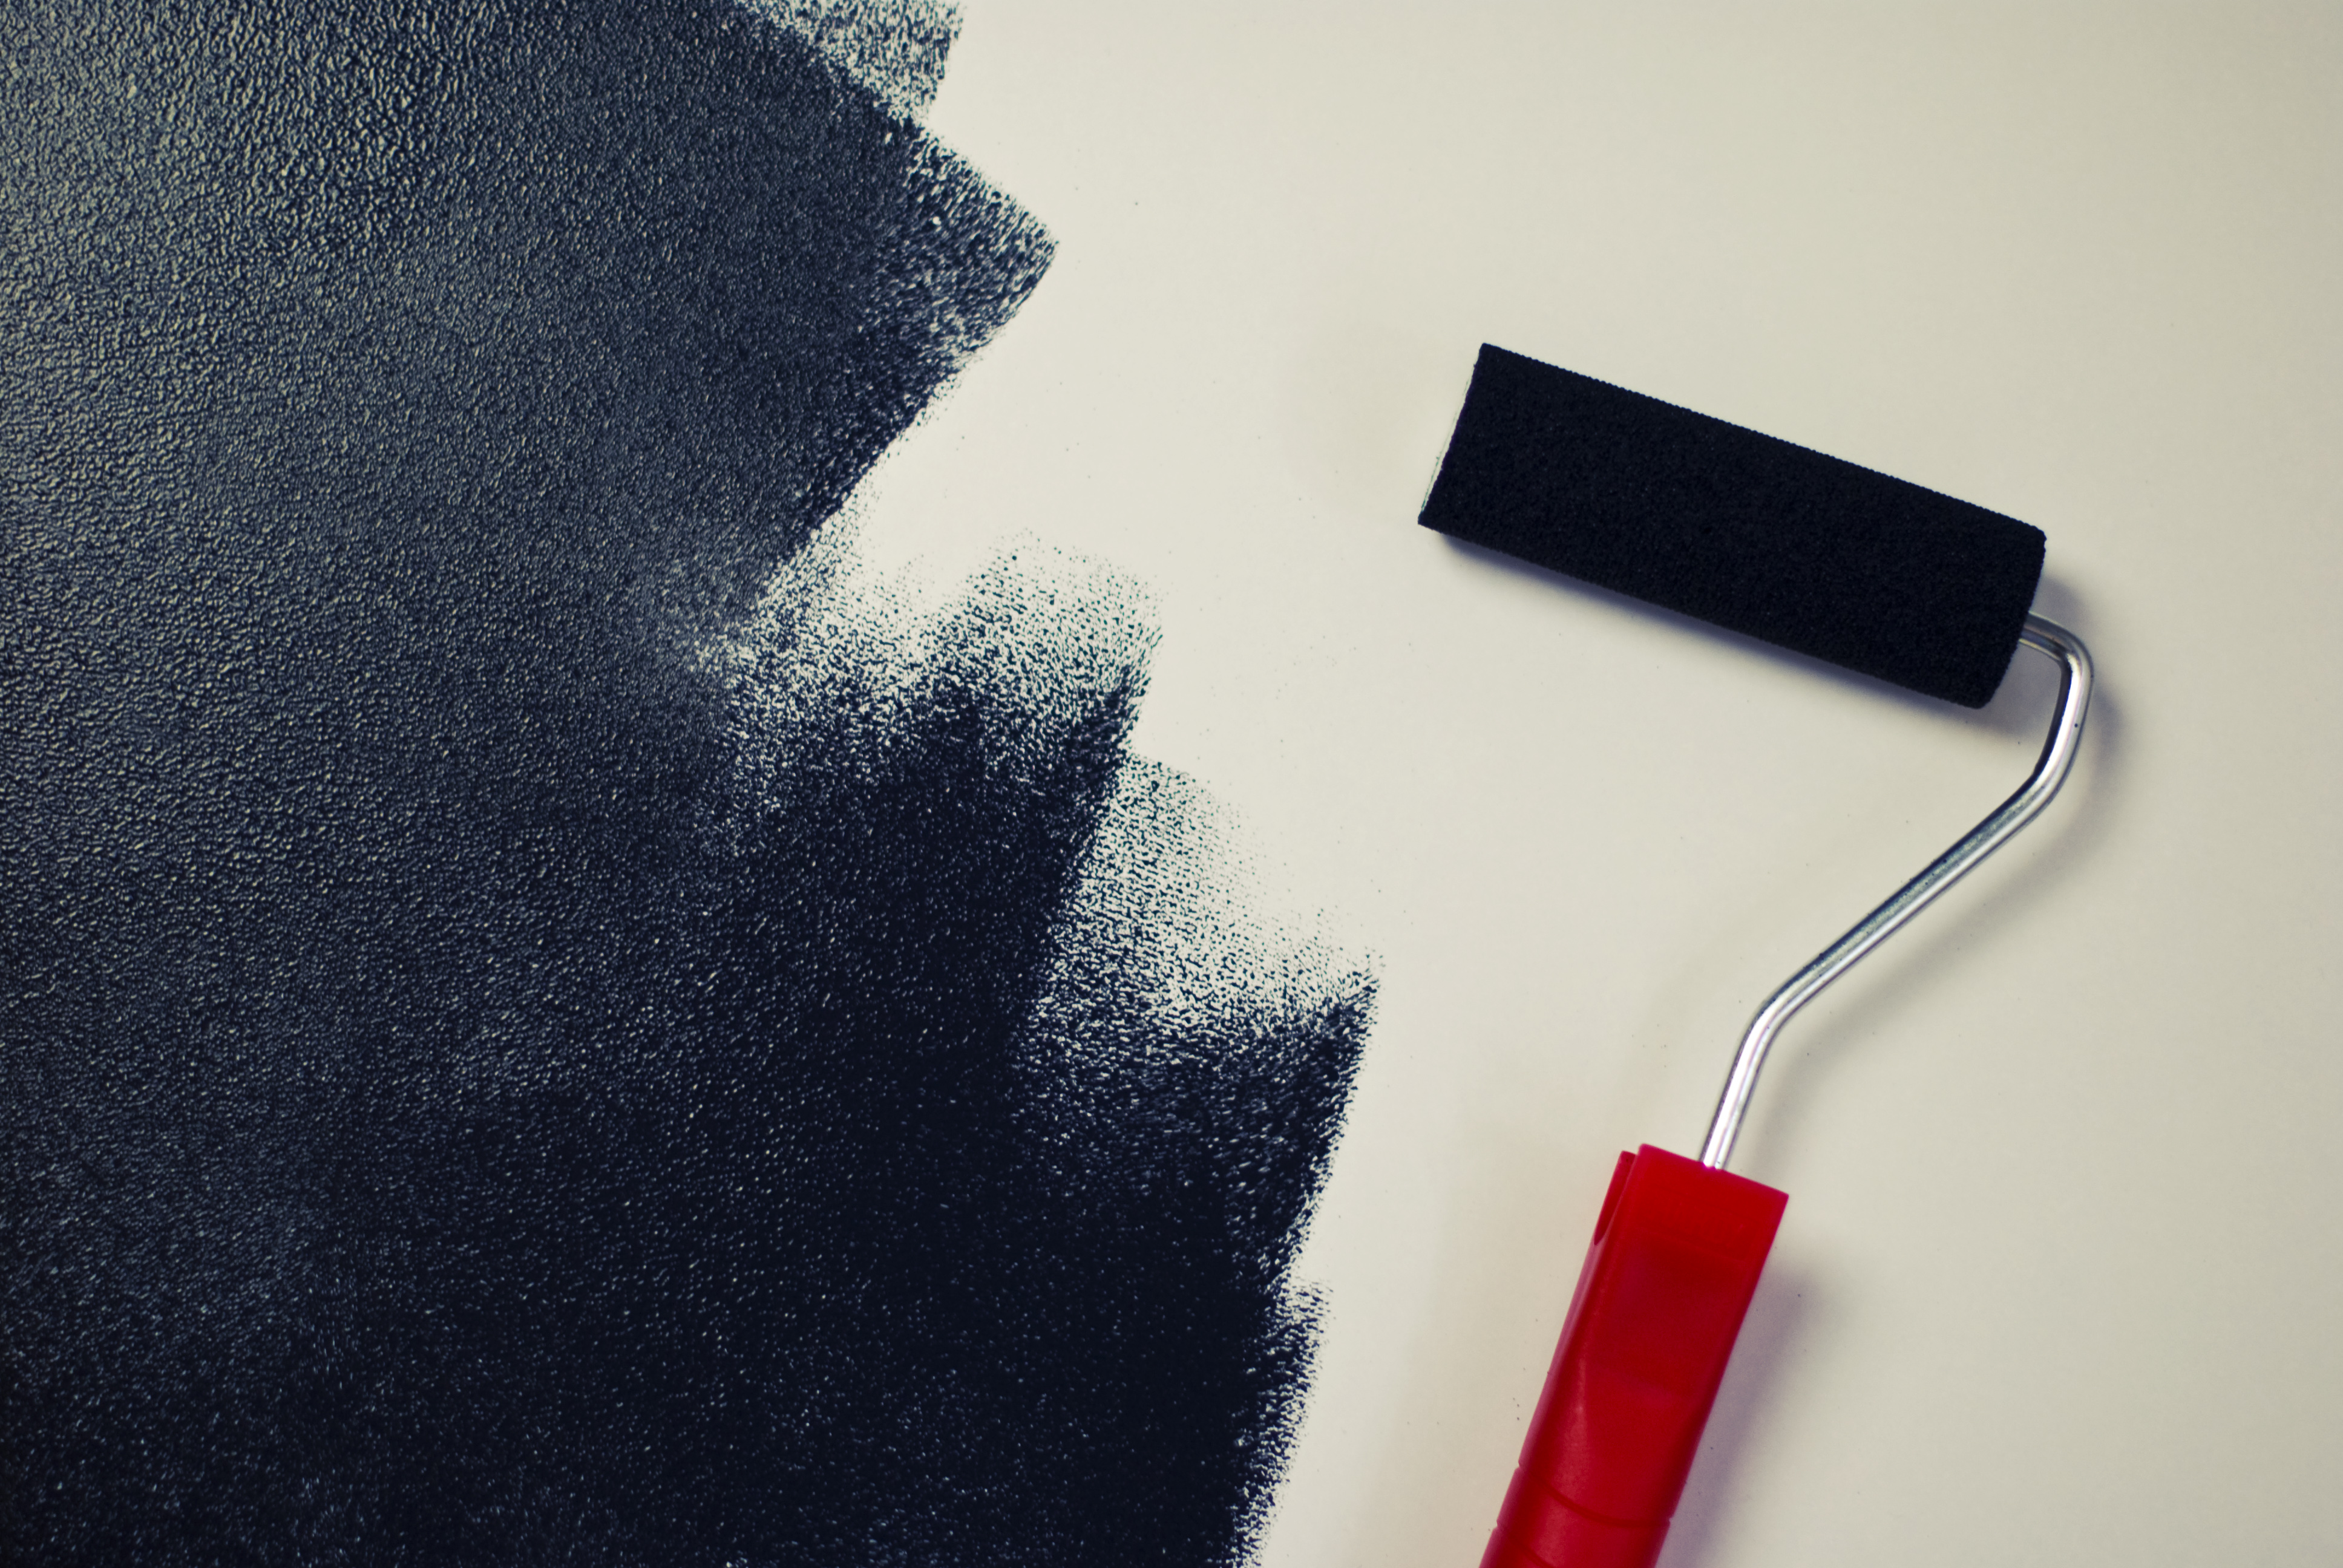 Thinking of painting your Toronto apartment? Read this first